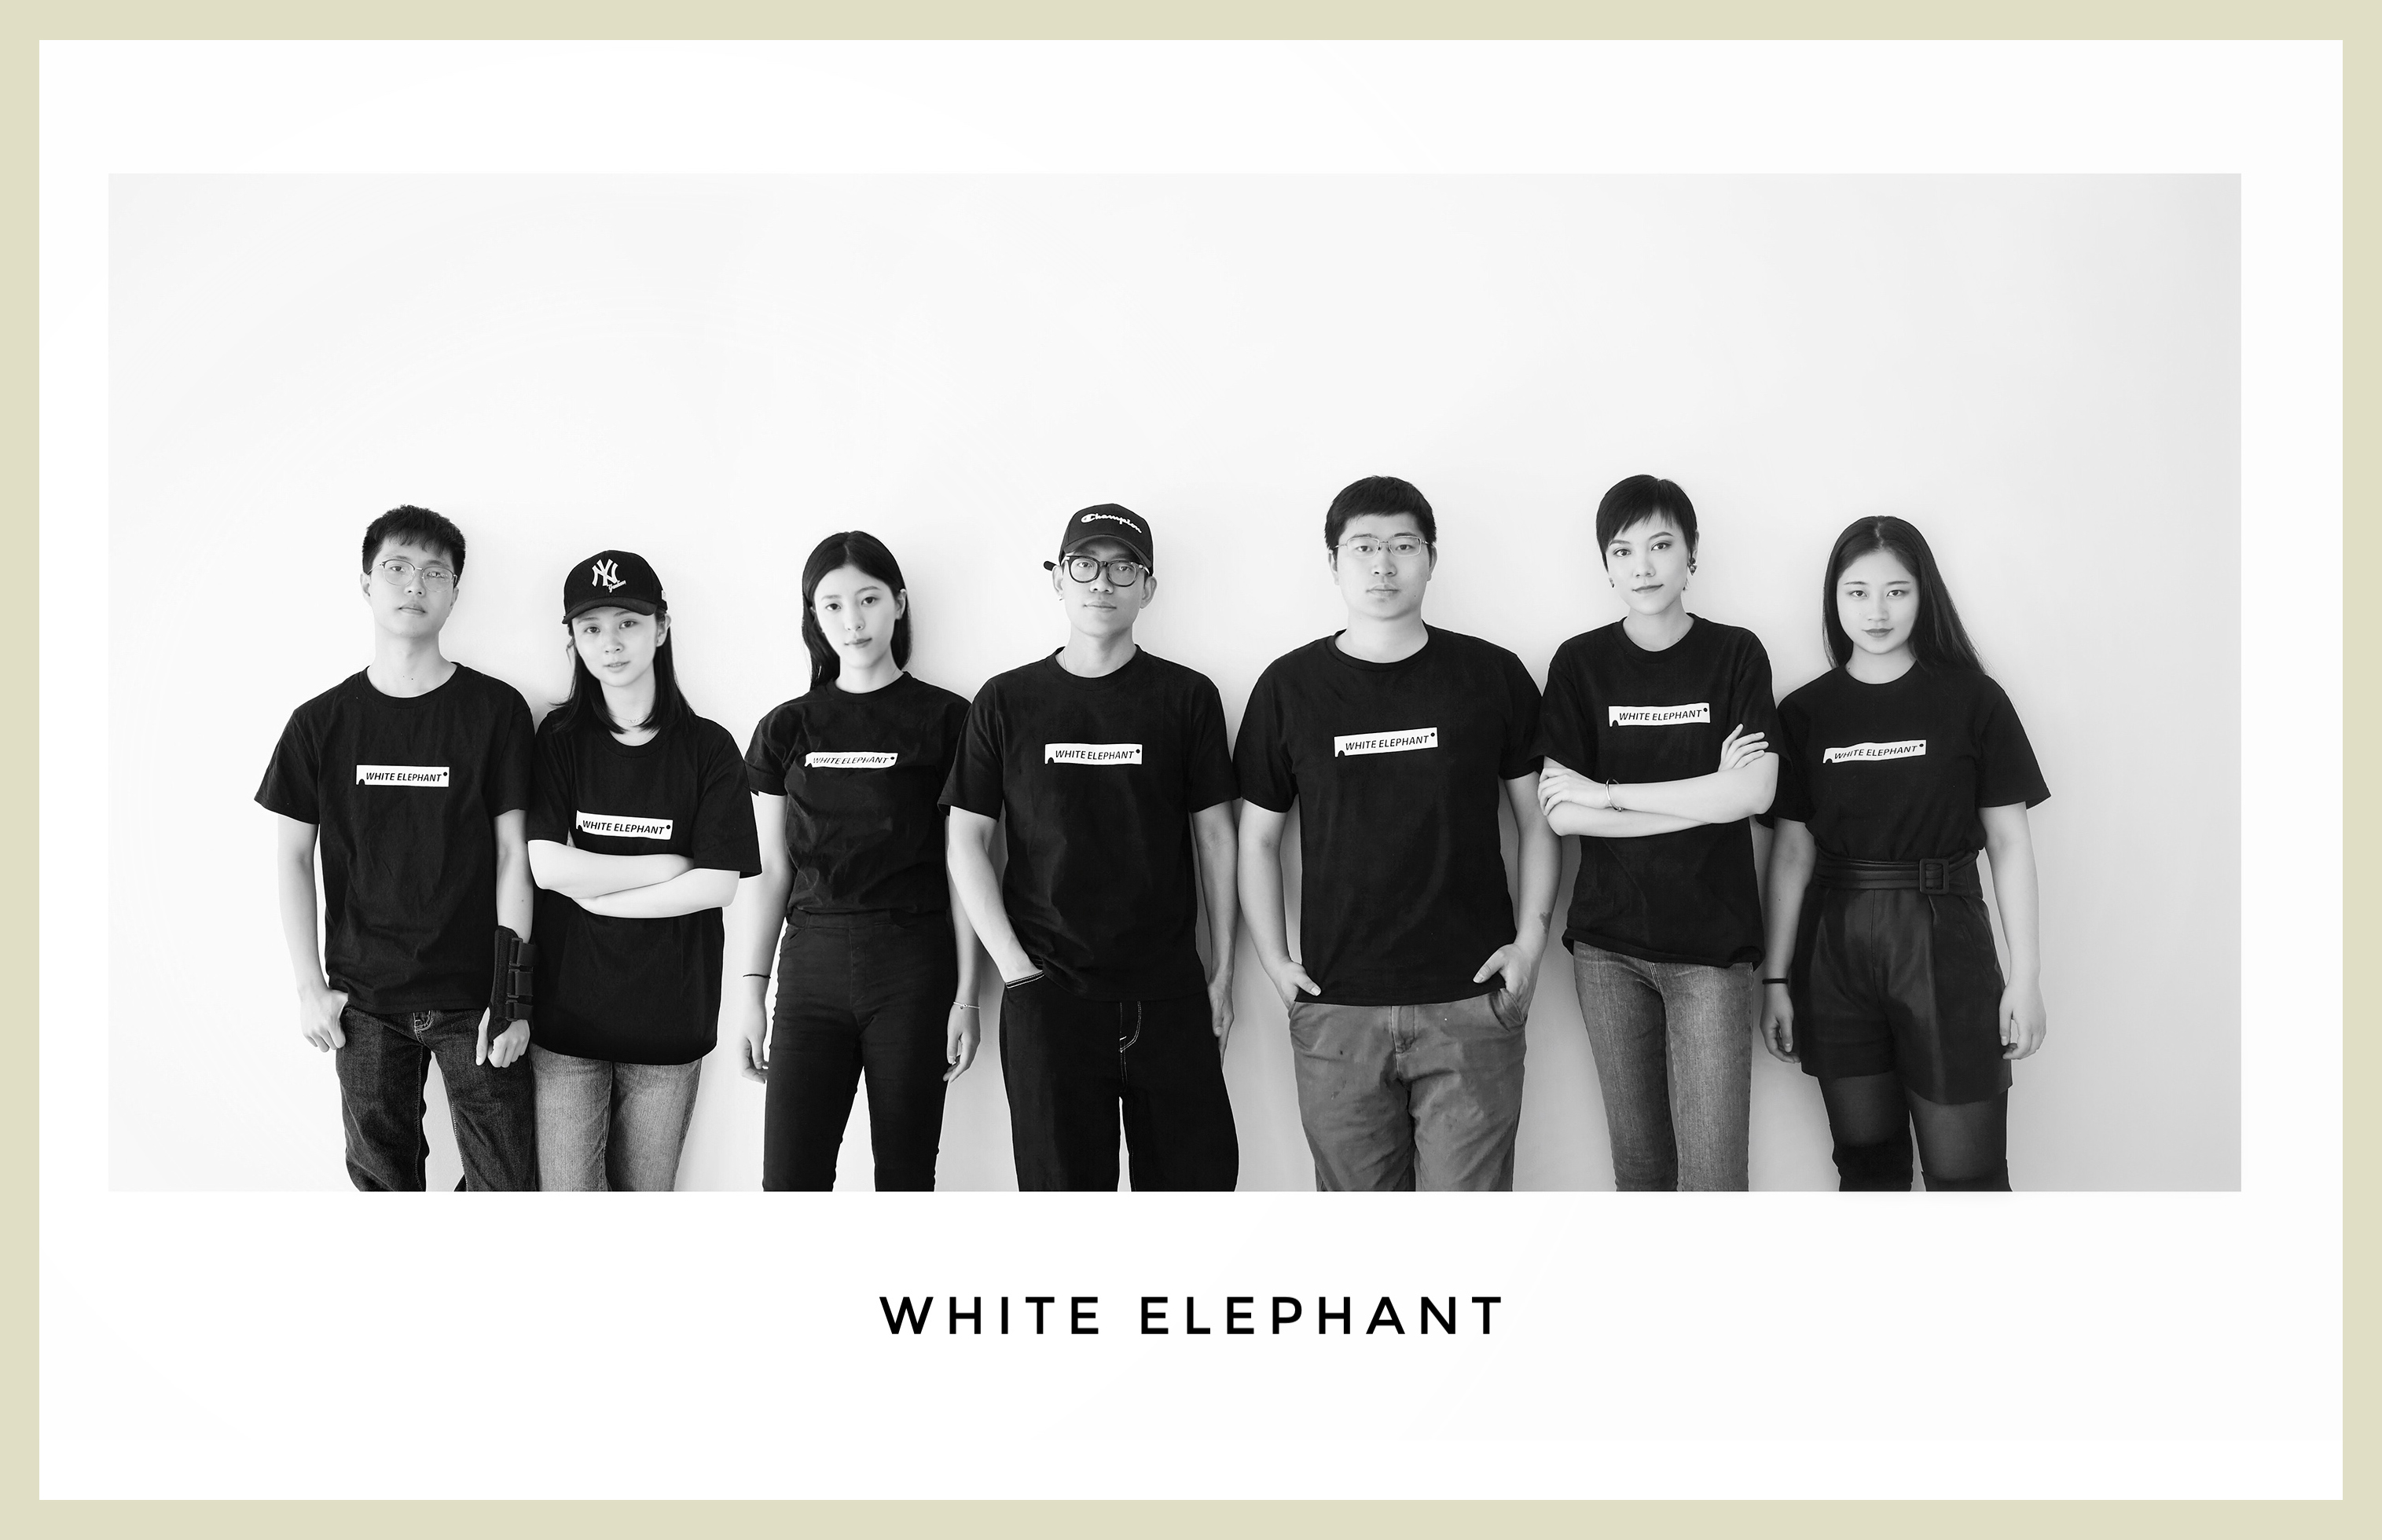 WHITE ELEPHANT PRODUCTION TEAM